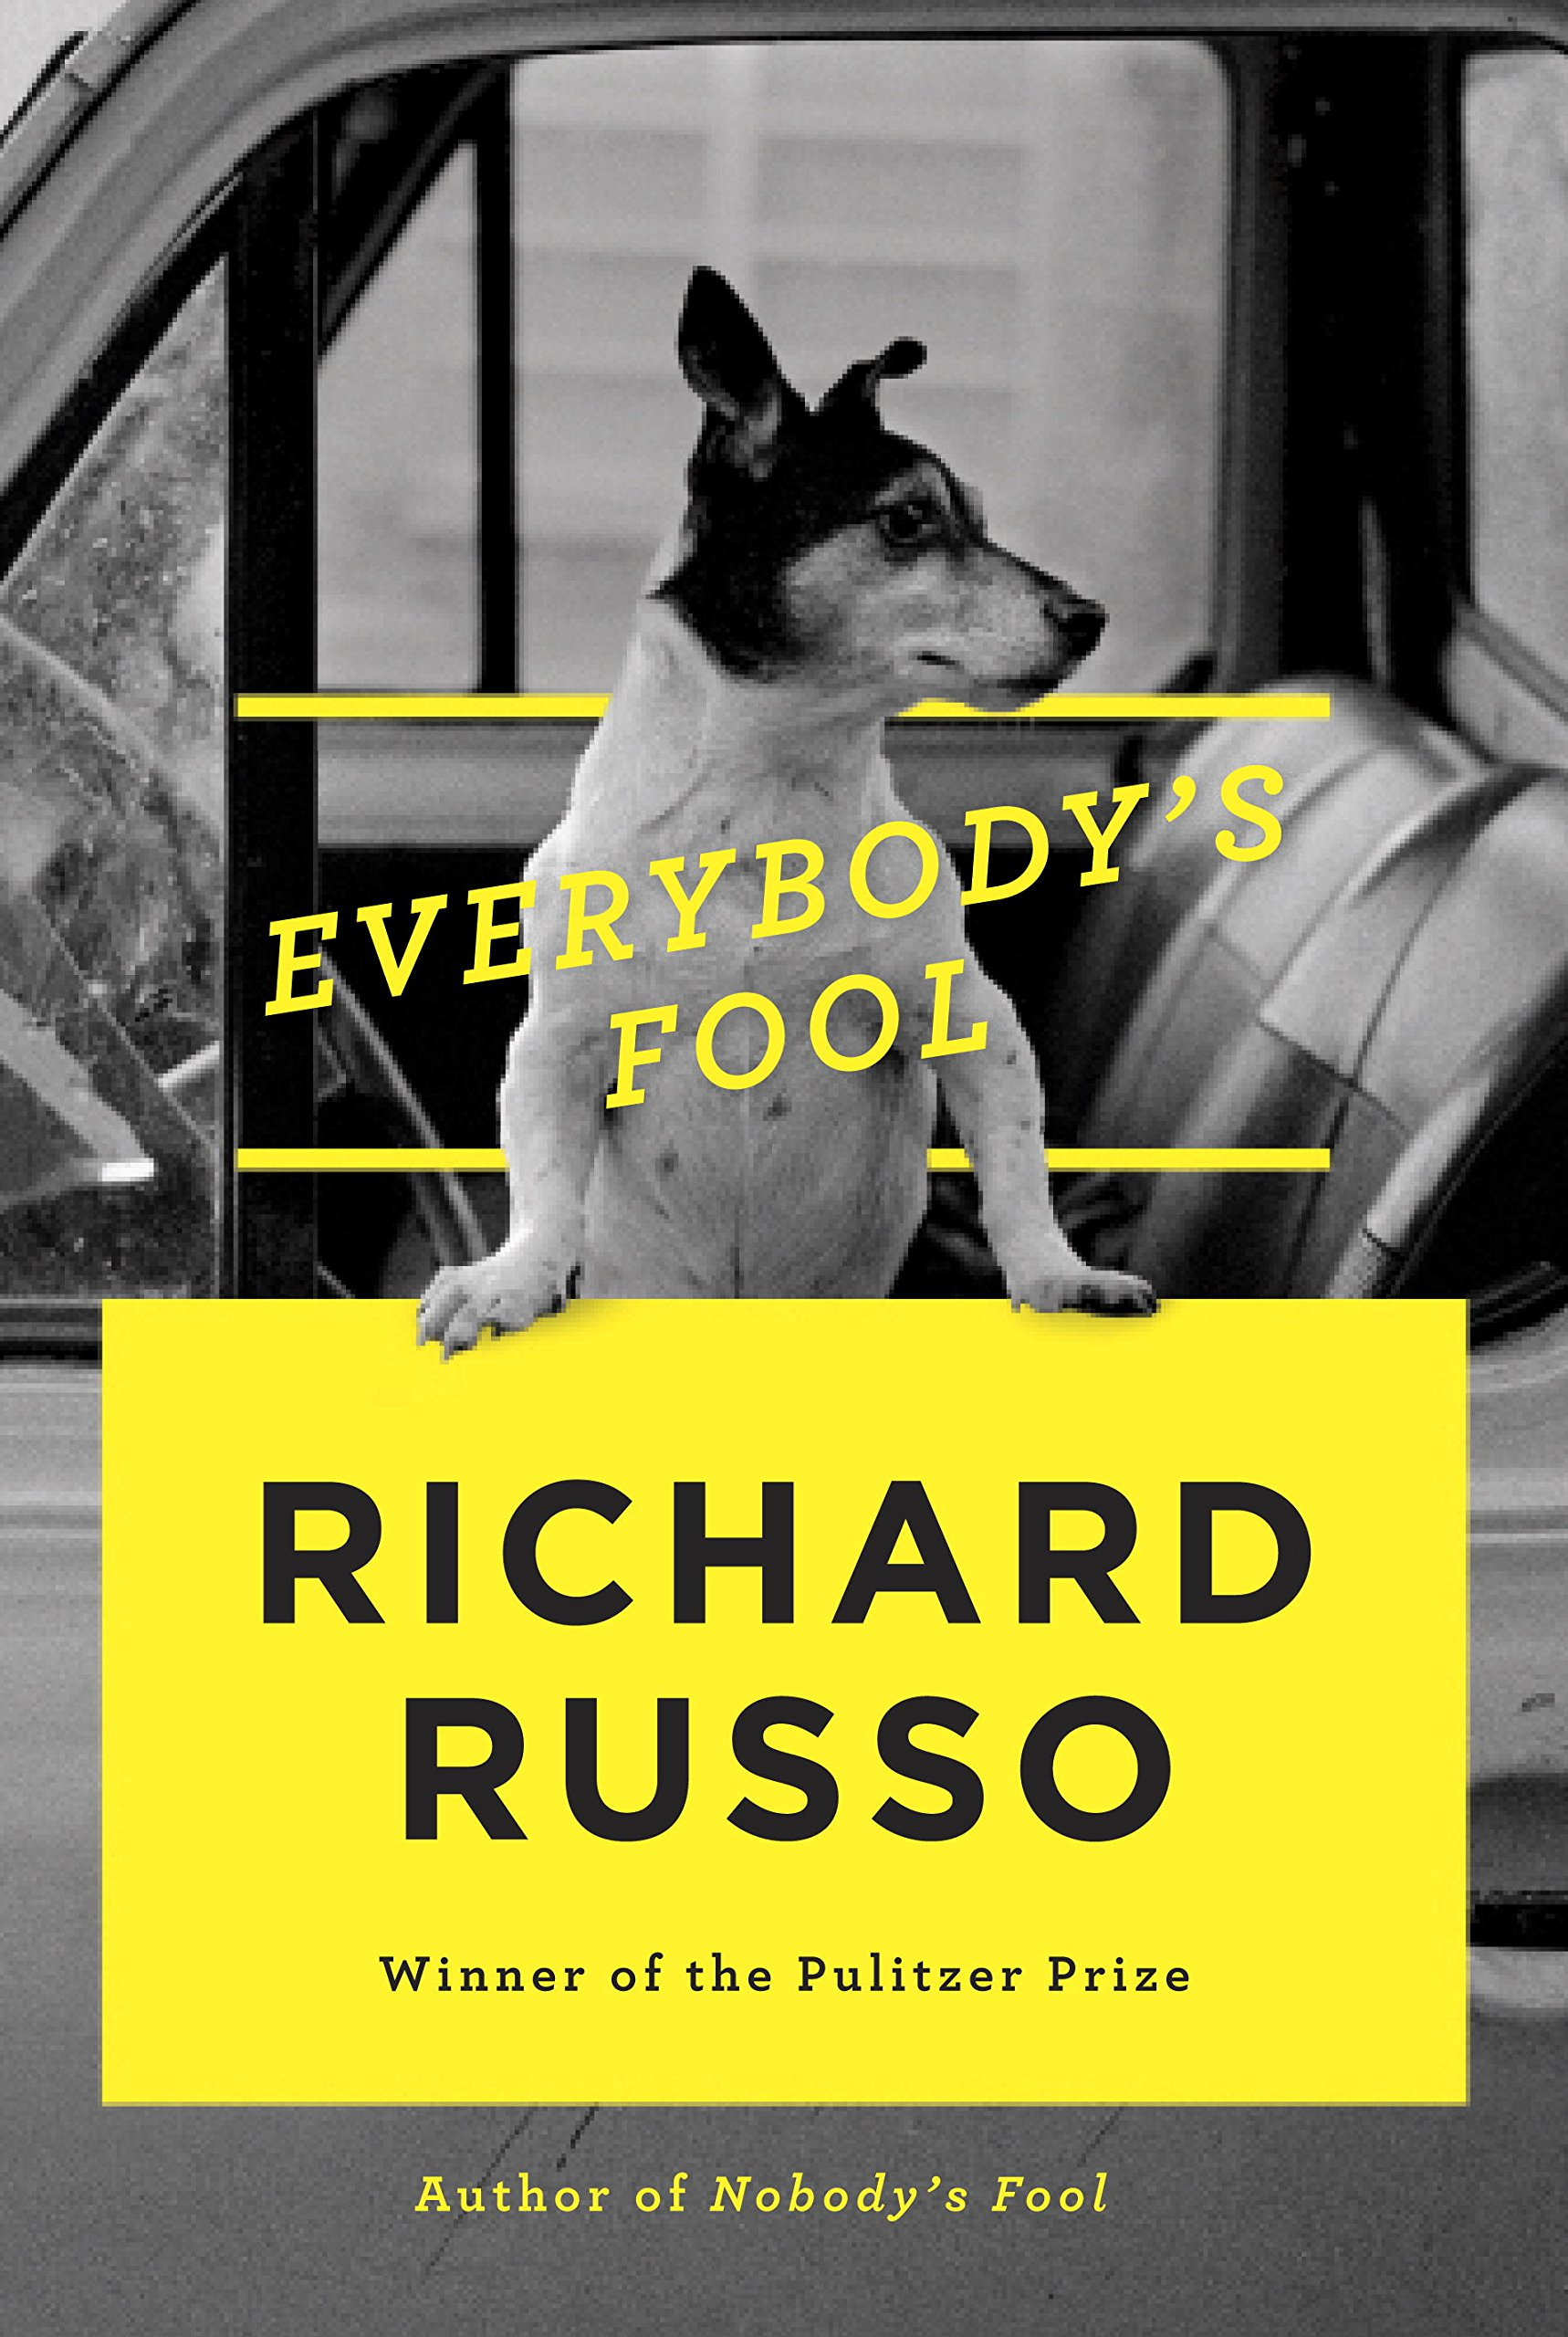 Everybody's Food by Richard Russo book cover